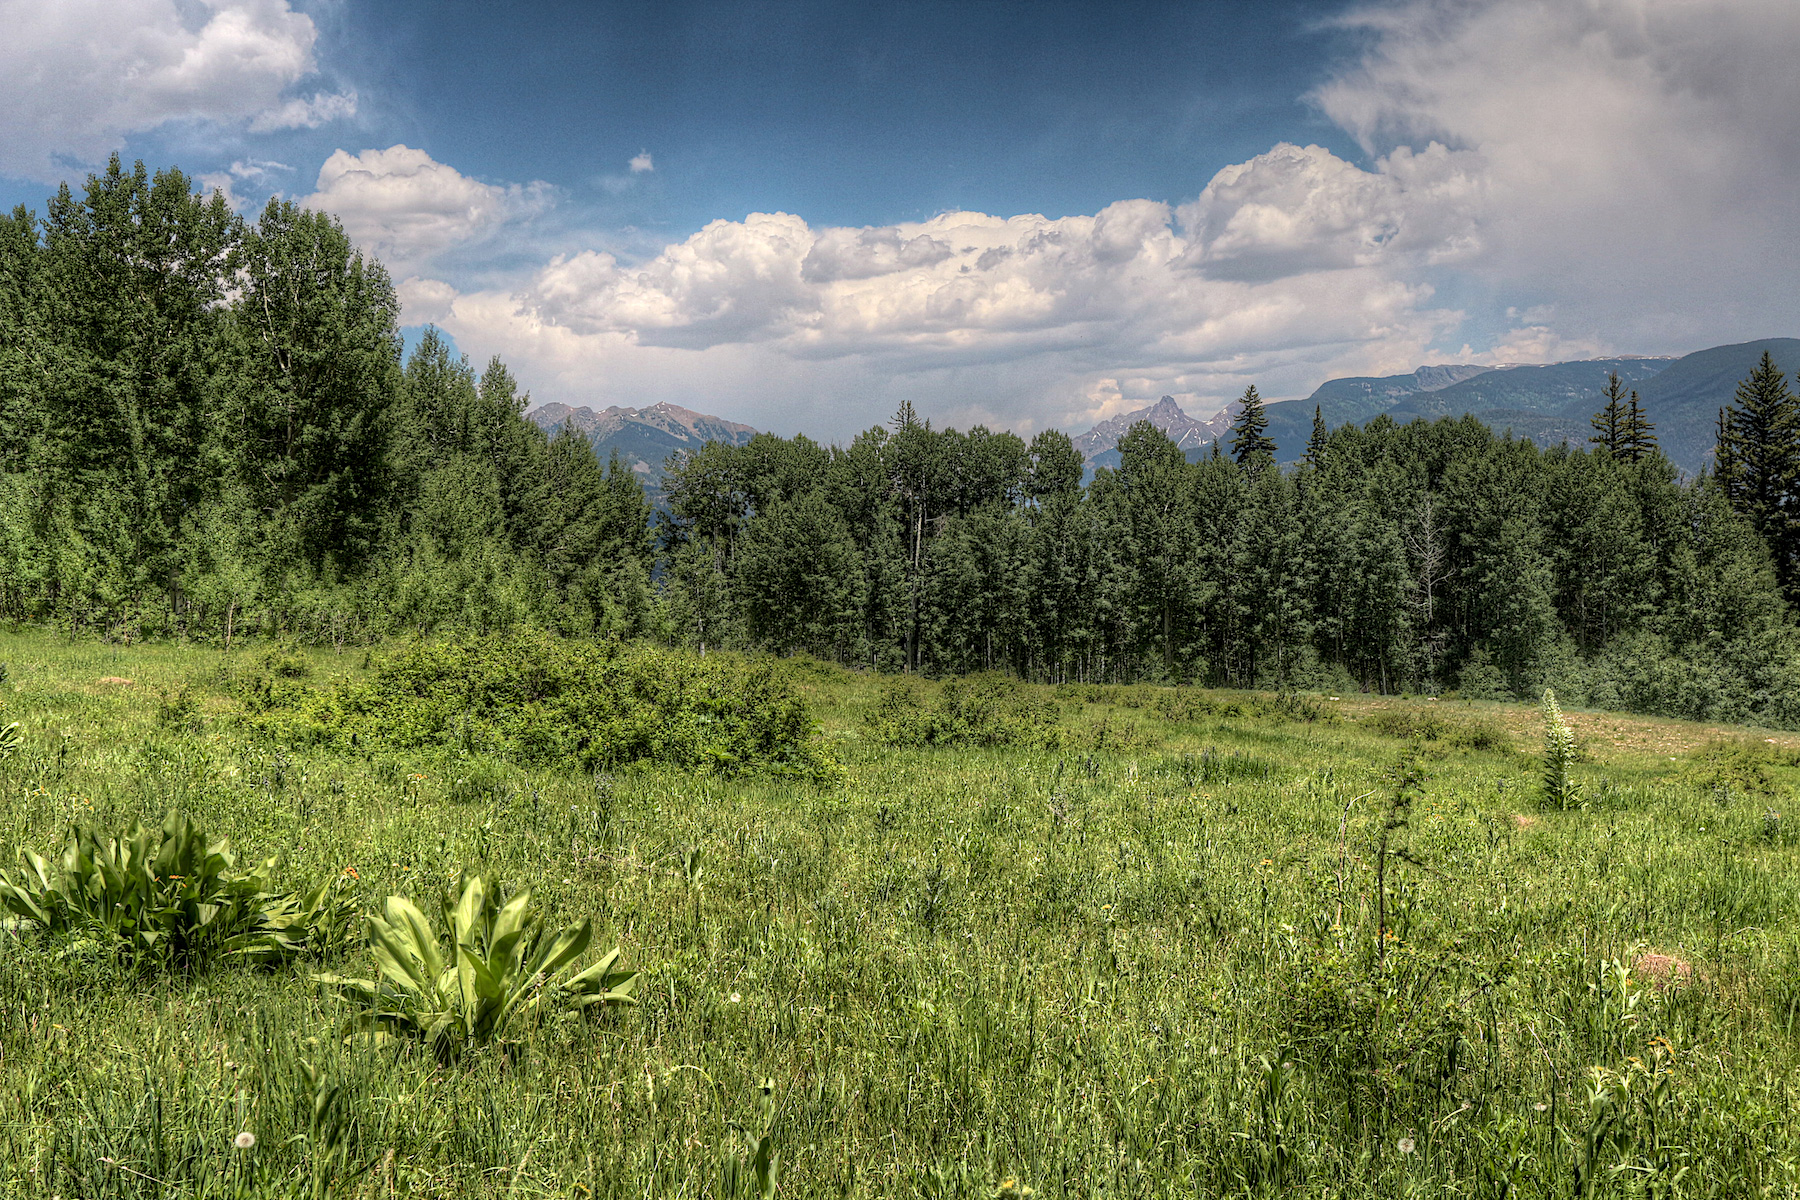 Land for Sale at 311 Wilshire Drive 311 Wilshire Drive Durango, Colorado 81301 United States